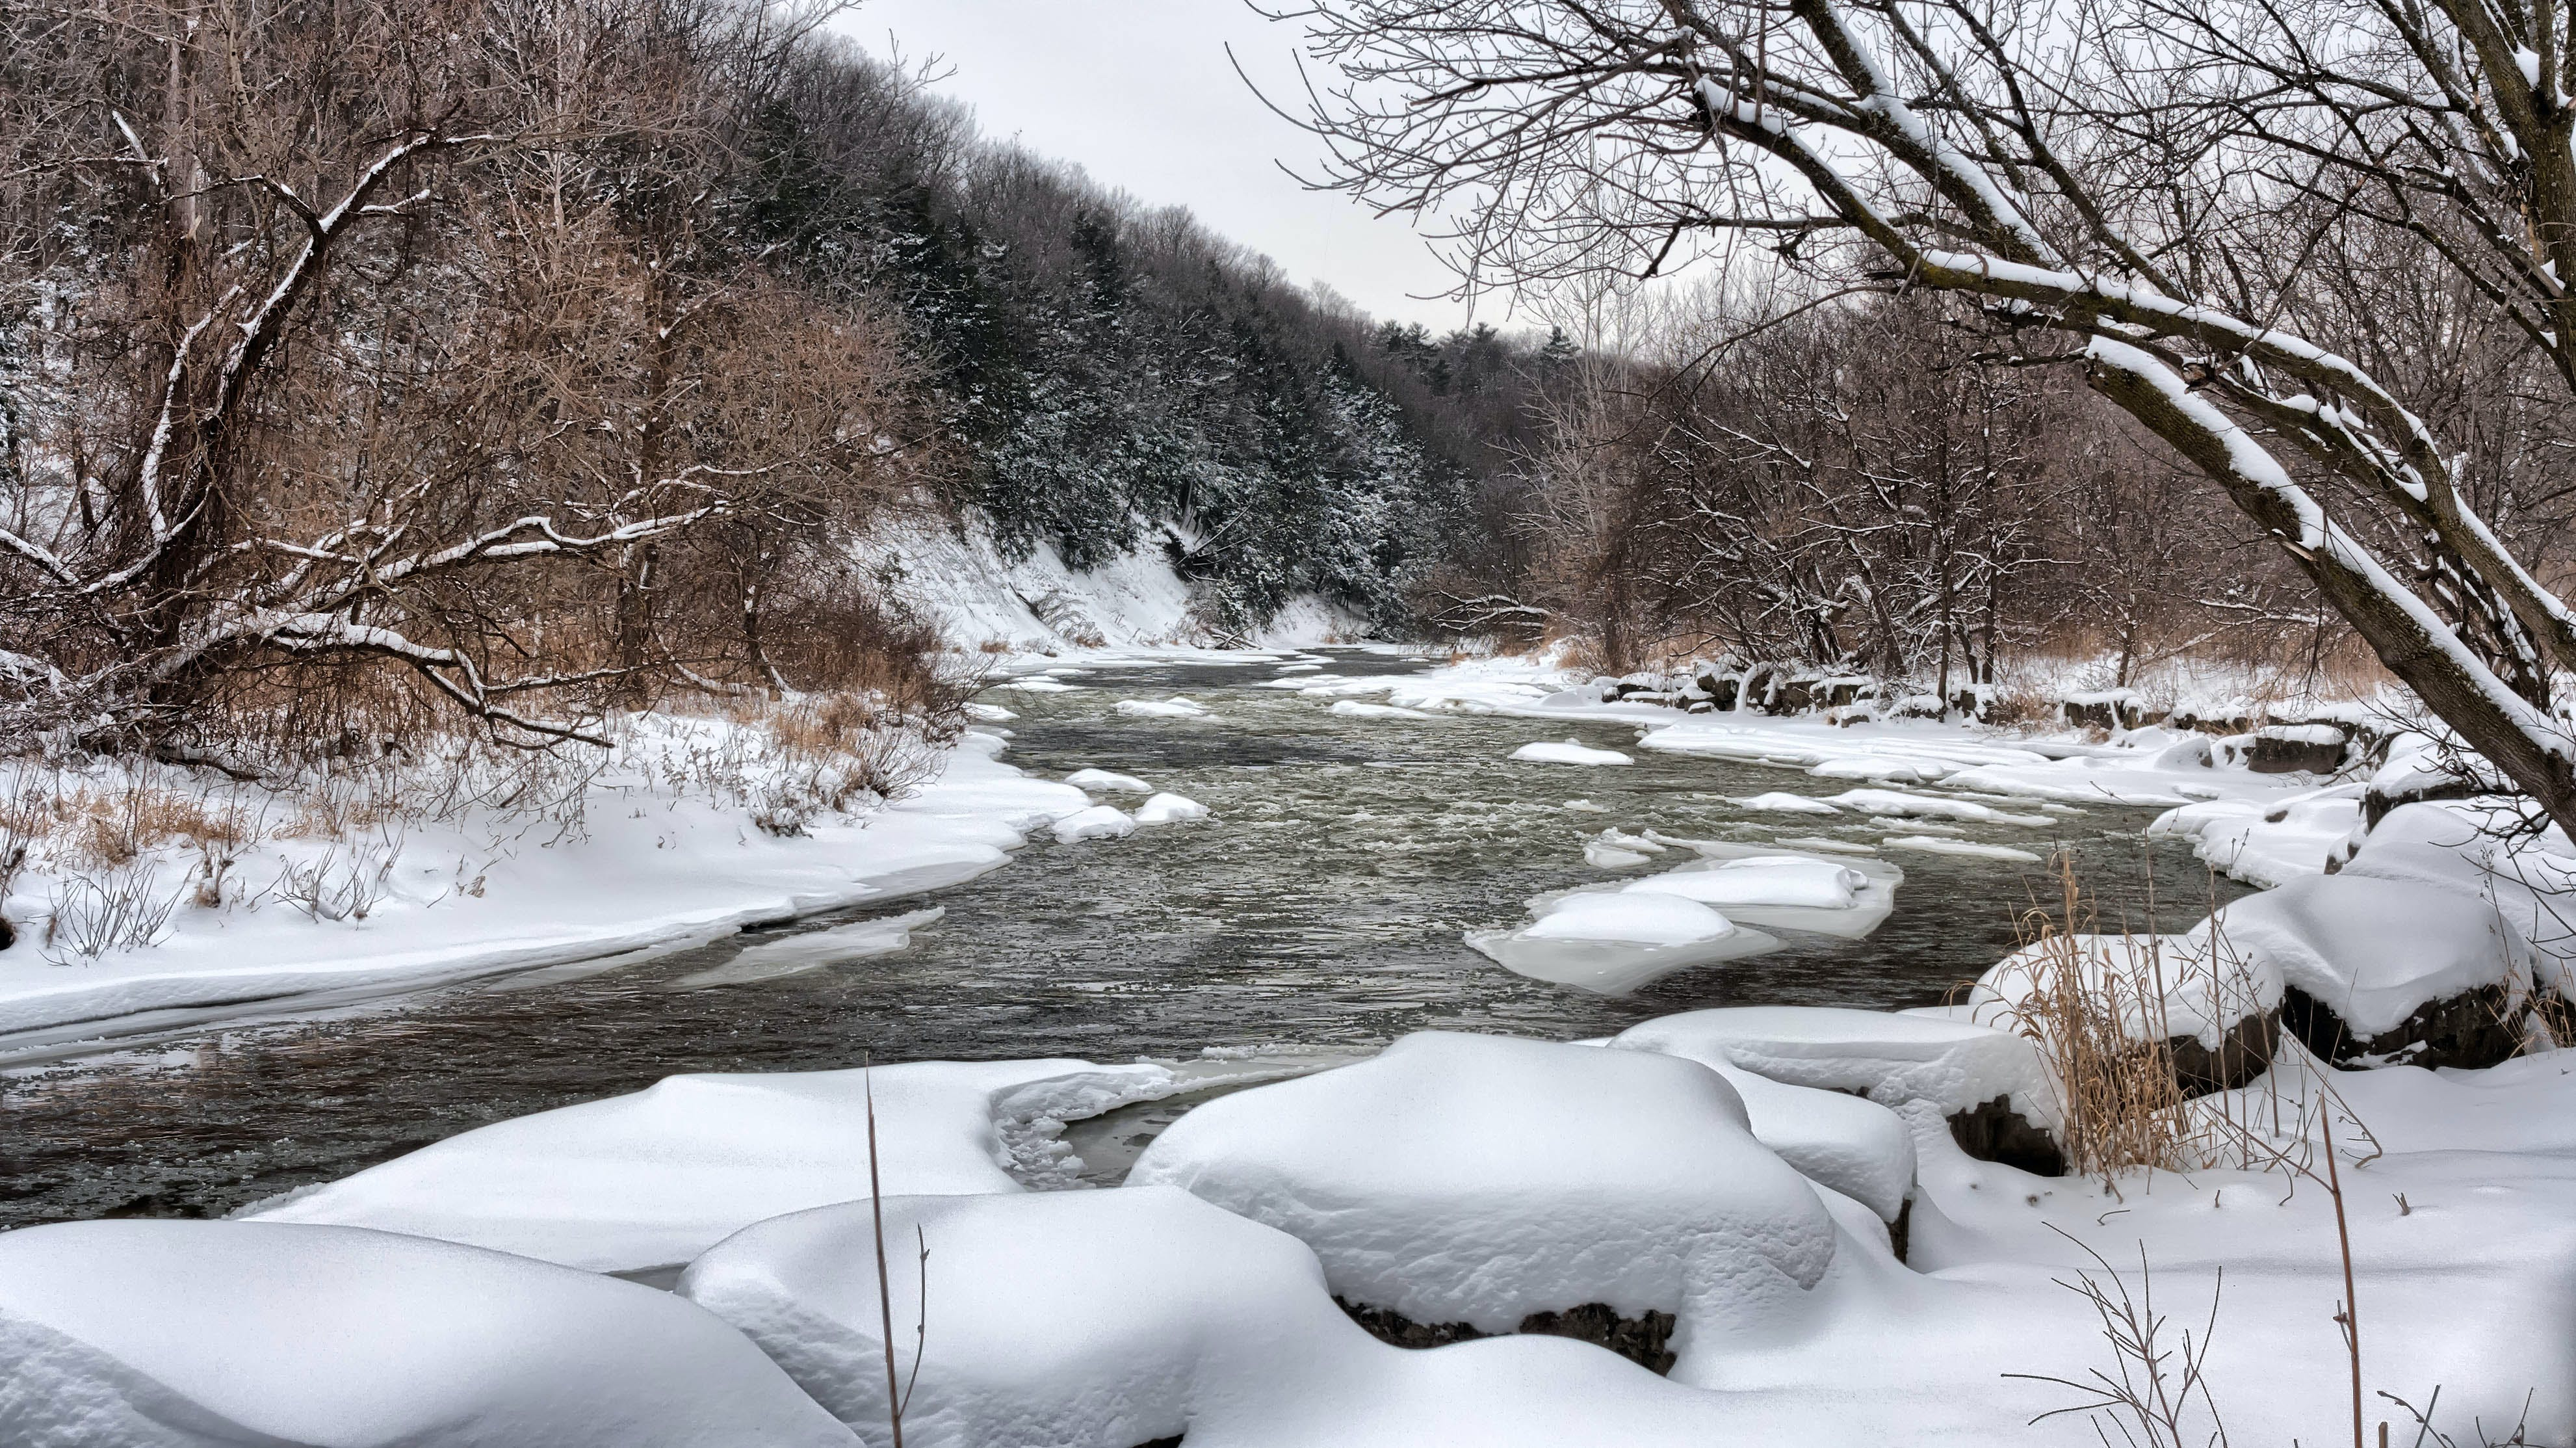 River at Snowy Day Photo